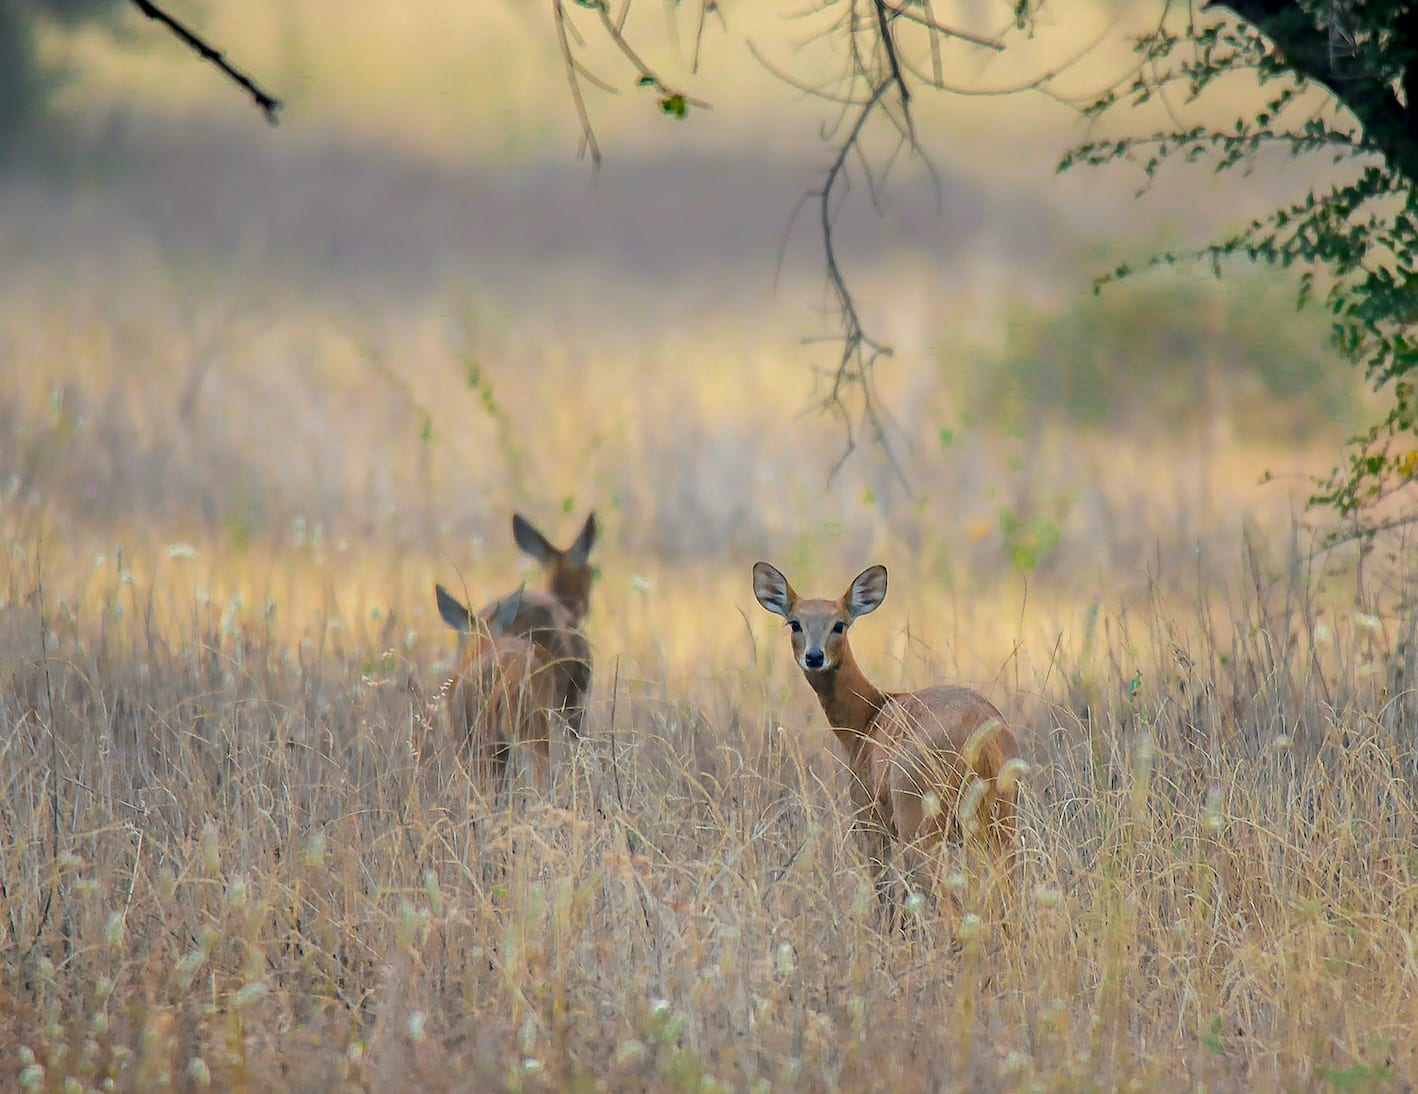 Chousingha: The Shy Four-horned Antelope